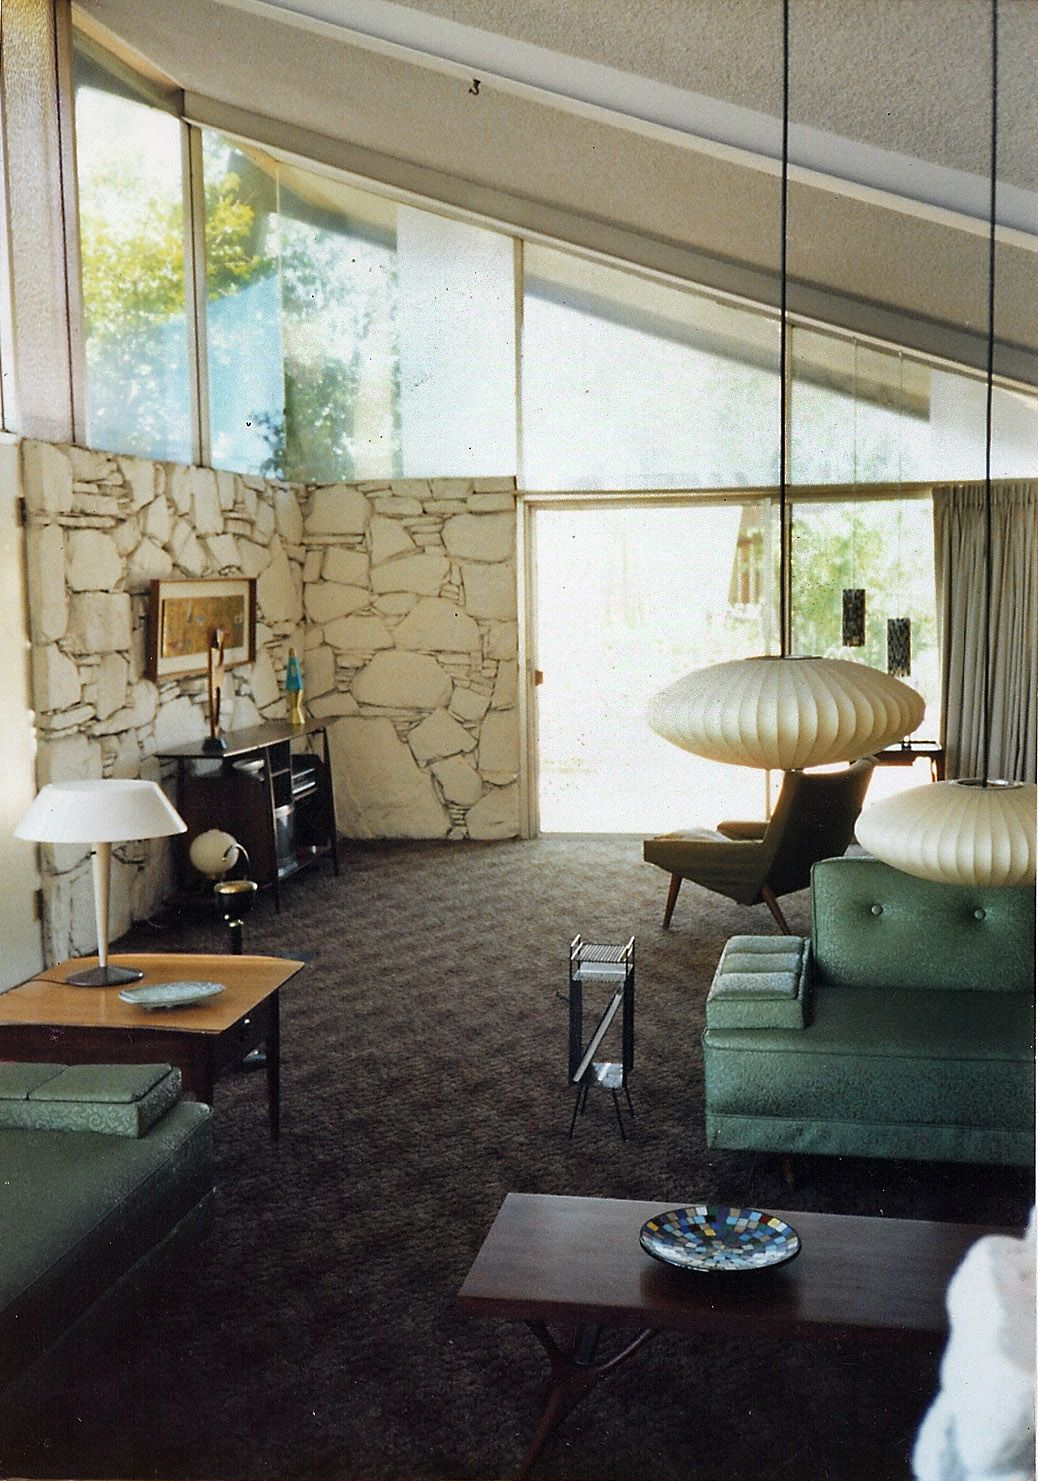 The impala lodge in palm springs 1958 twist modern - Palm springs interior design style ...